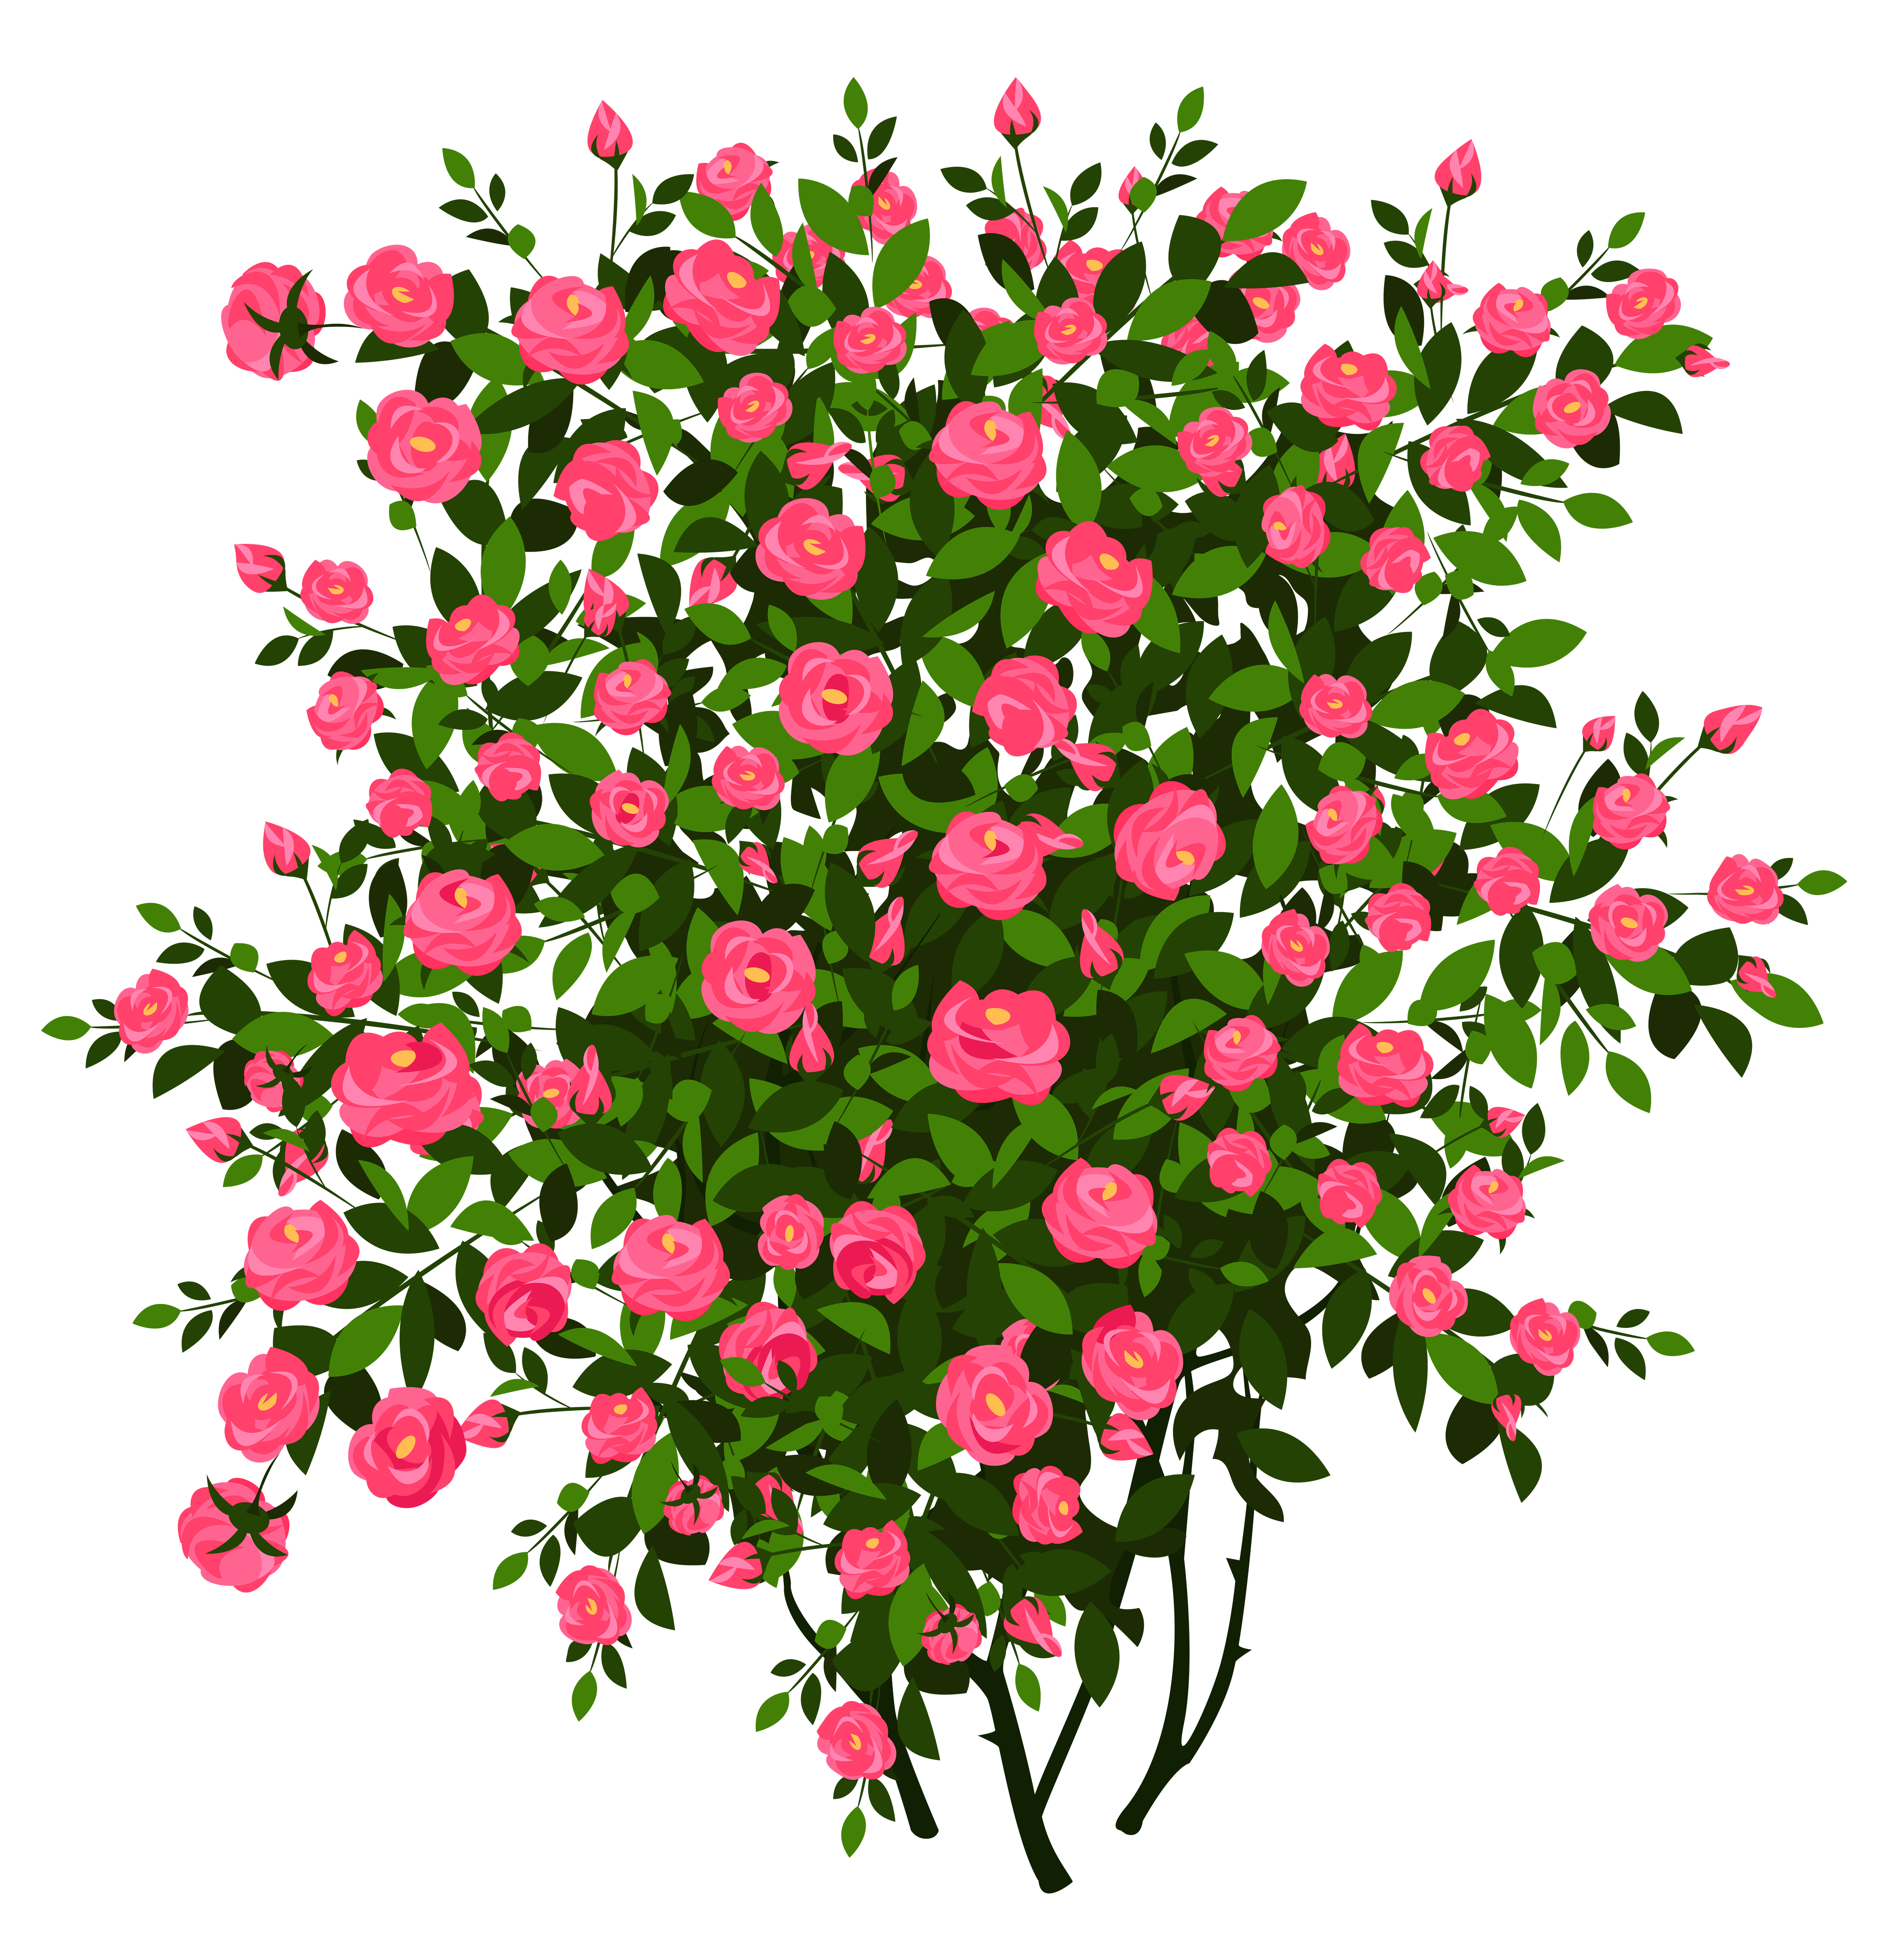 png library library Bush clipart transparent flower. Pink rose png picture.